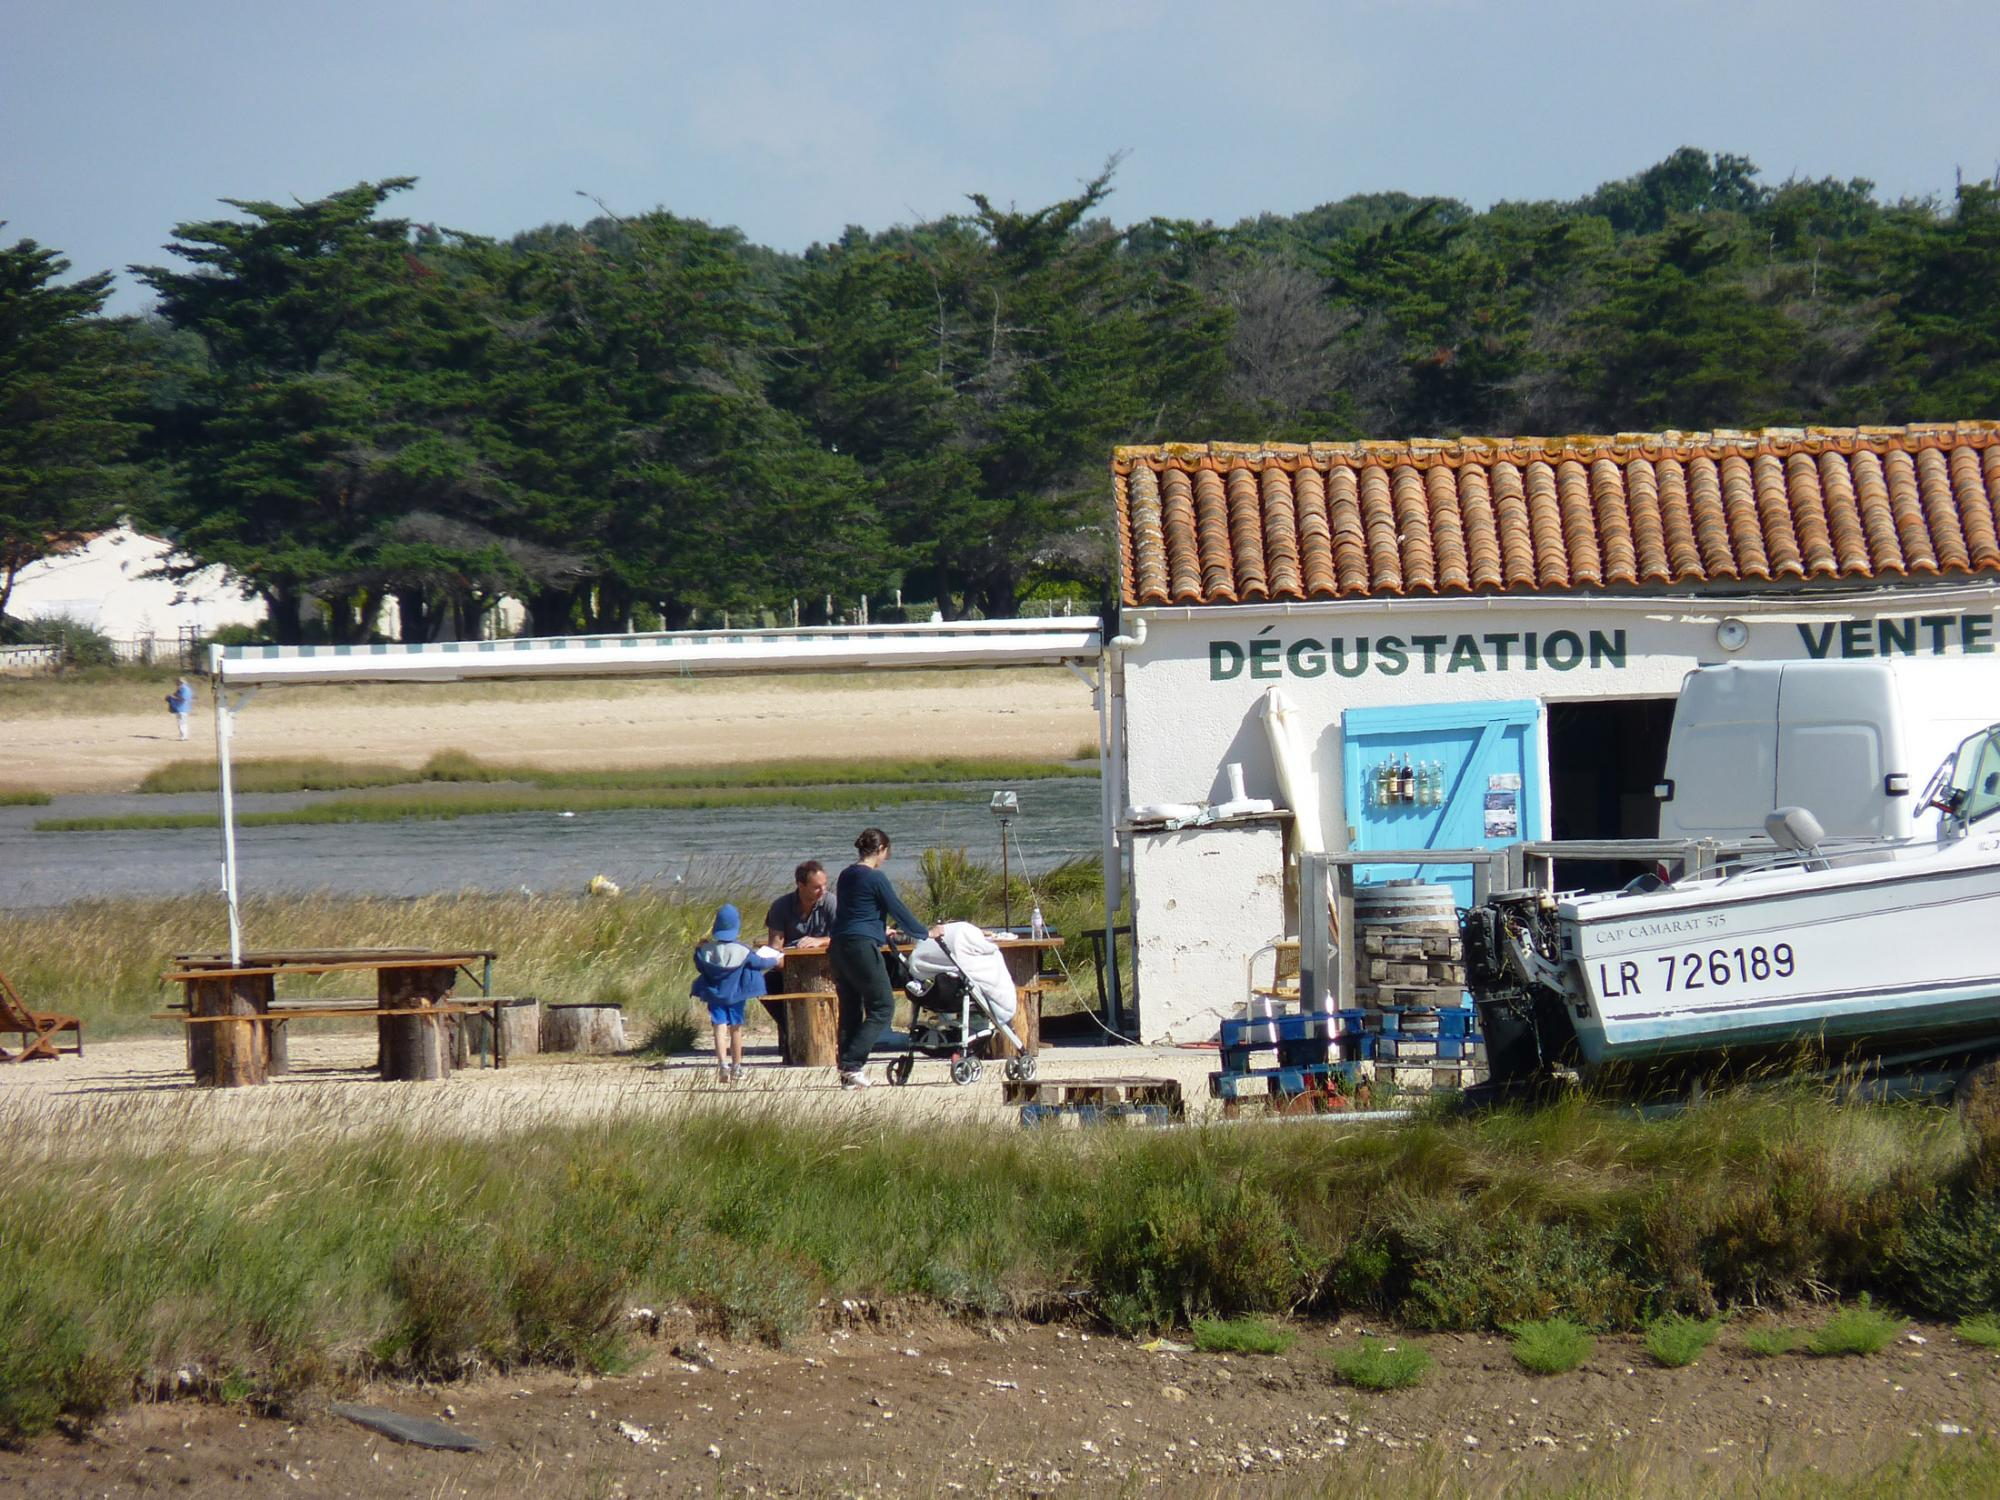 Discovering Aix island's oysters - Crossings by ferry boats Fouras / Aix island